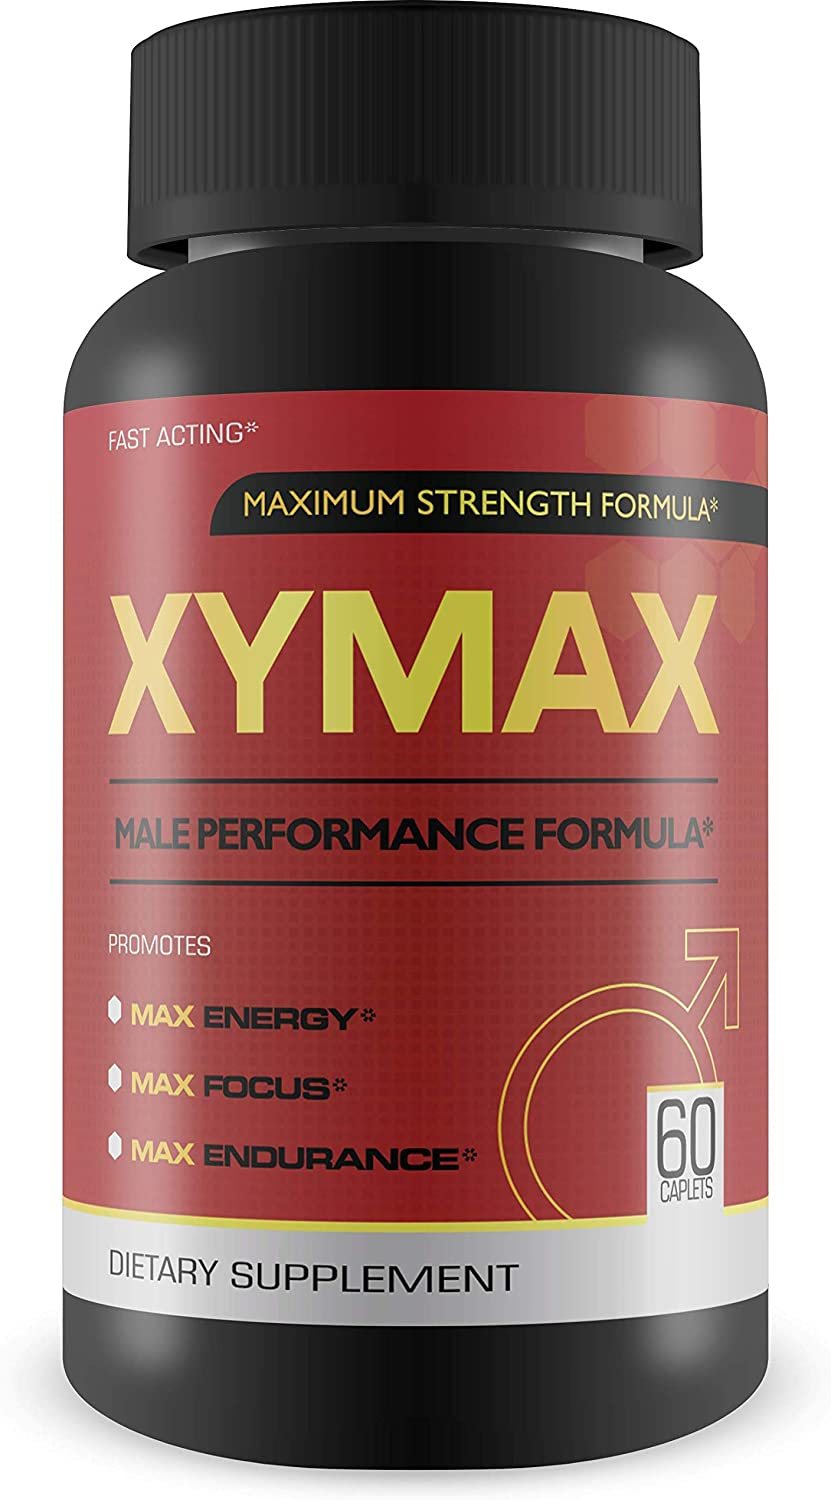 Xymax Male Performance Cheap super San Antonio Mall special price Supplement- Formula for Strength Maximum